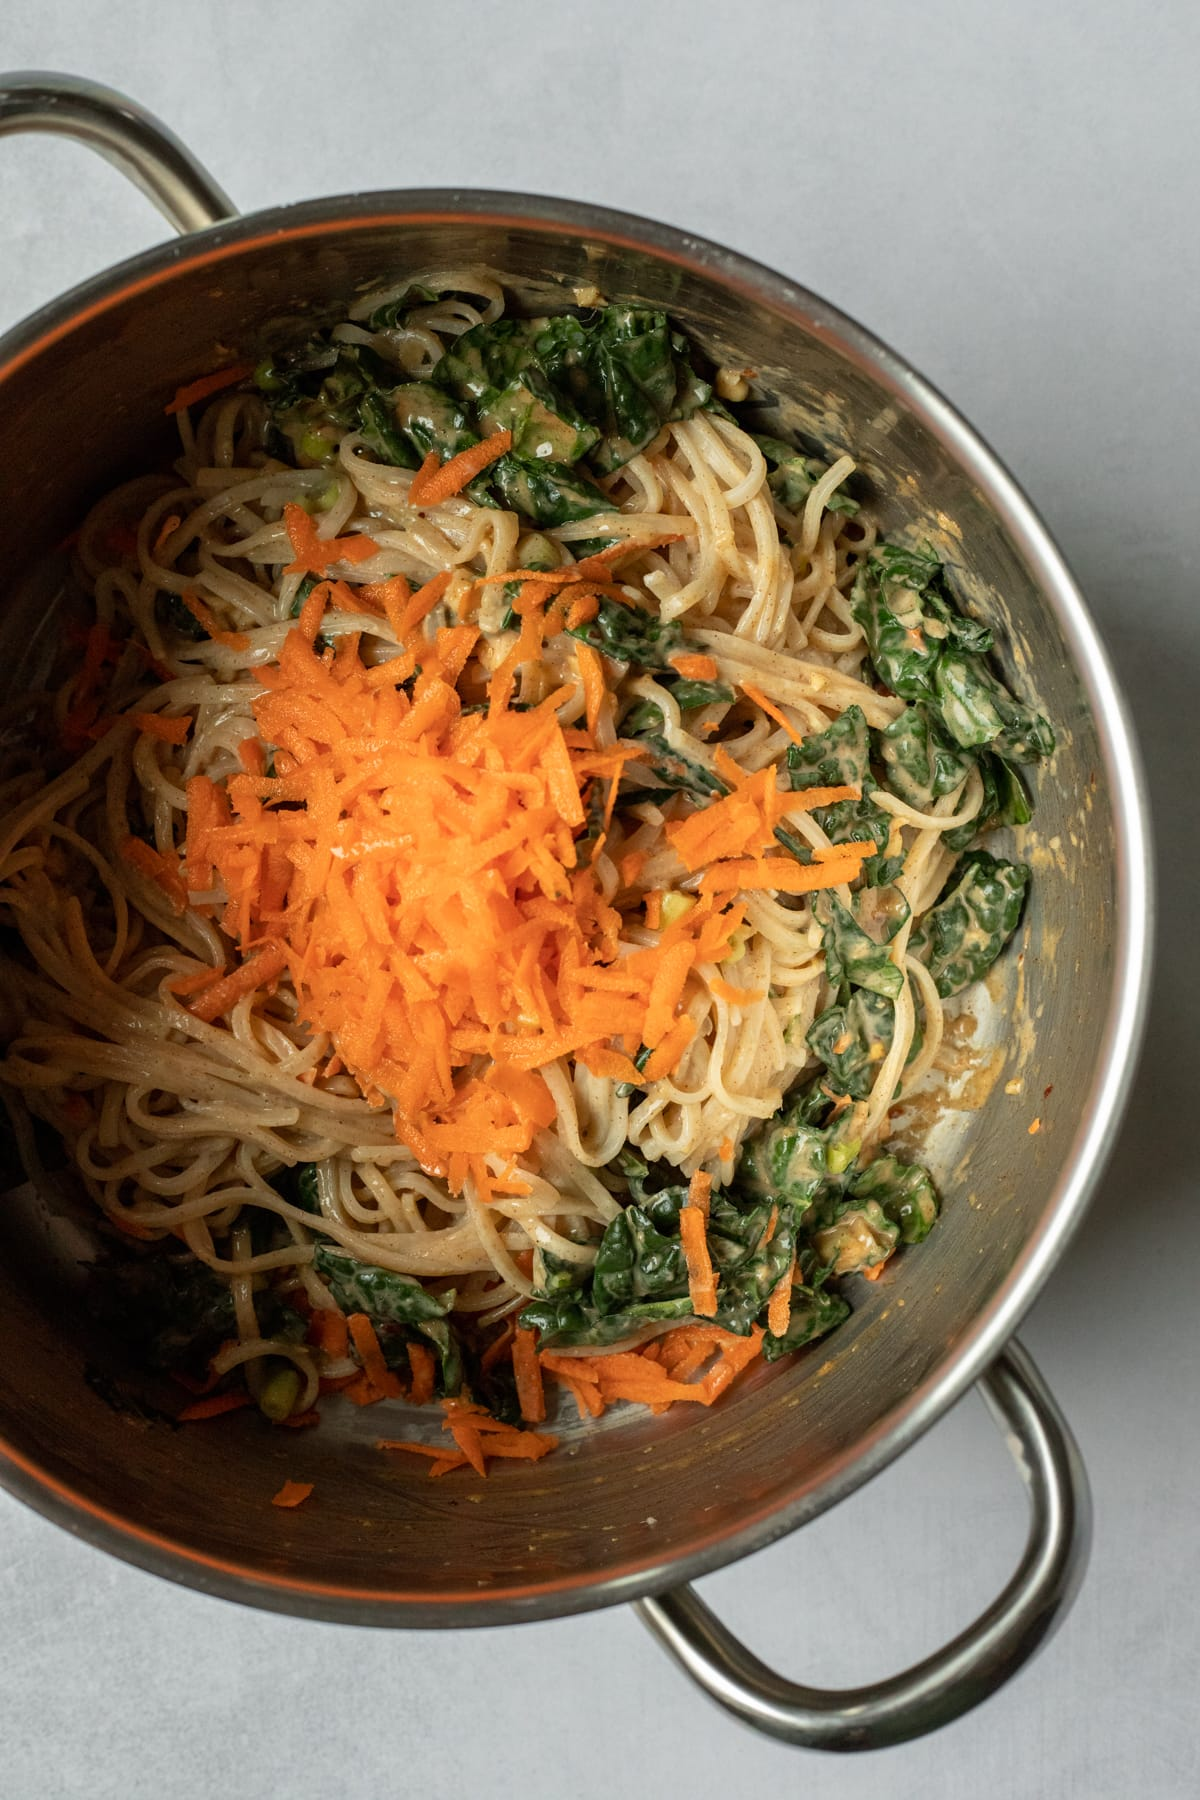 combining cooked noodles, veggies and sauce in a pot